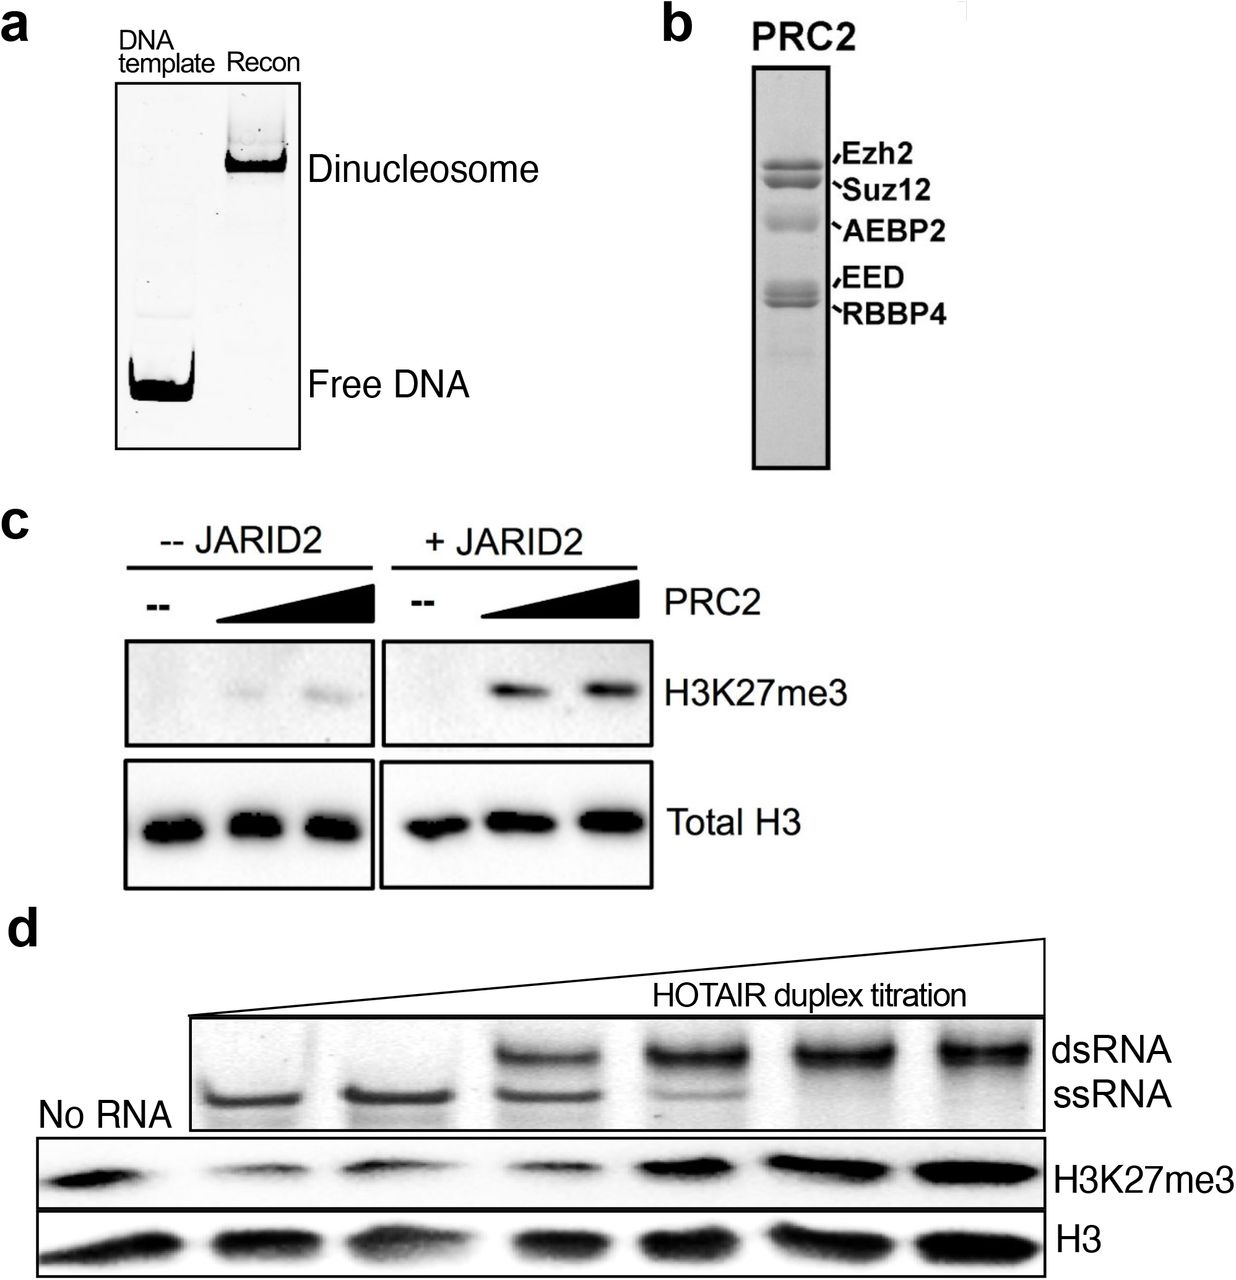 Duplex RNA promotes PRC2 activity. a , Native gel of di-nucleosomes reconstituted via salt dialysis using a DNA template containing two 601 sequences surrounding 40-bp of linker DNA. DNA and nucleosome samples were run on a 5% native polyacrylamide gel and stained with SYBR Gold. b , Recombinant human PRC2 complex includes SUZ12, EZH2, EED, RBBP4 and AEBP2, analyzed by SDS-PAGE and stained with Coomassie blue. c , Histone methyltransferase assay (HMTase assay) was performed with recombinant PRC2 complex, di-nucleosomes, S-Adenosylmethionine (SAM) with and without the co-factor JARID2 (amino acids 119-574). PRC2 activity was determined by SDS-PAGE followed by H3K27me3 and total H3 Western blot analysis. d , Native 0.5X TBE gel of RNA annealing titration with HOTAIR forward and reverse fragments to show formation of dsRNA. HMTase assay with annealed HOTAIR dsRNA titration.